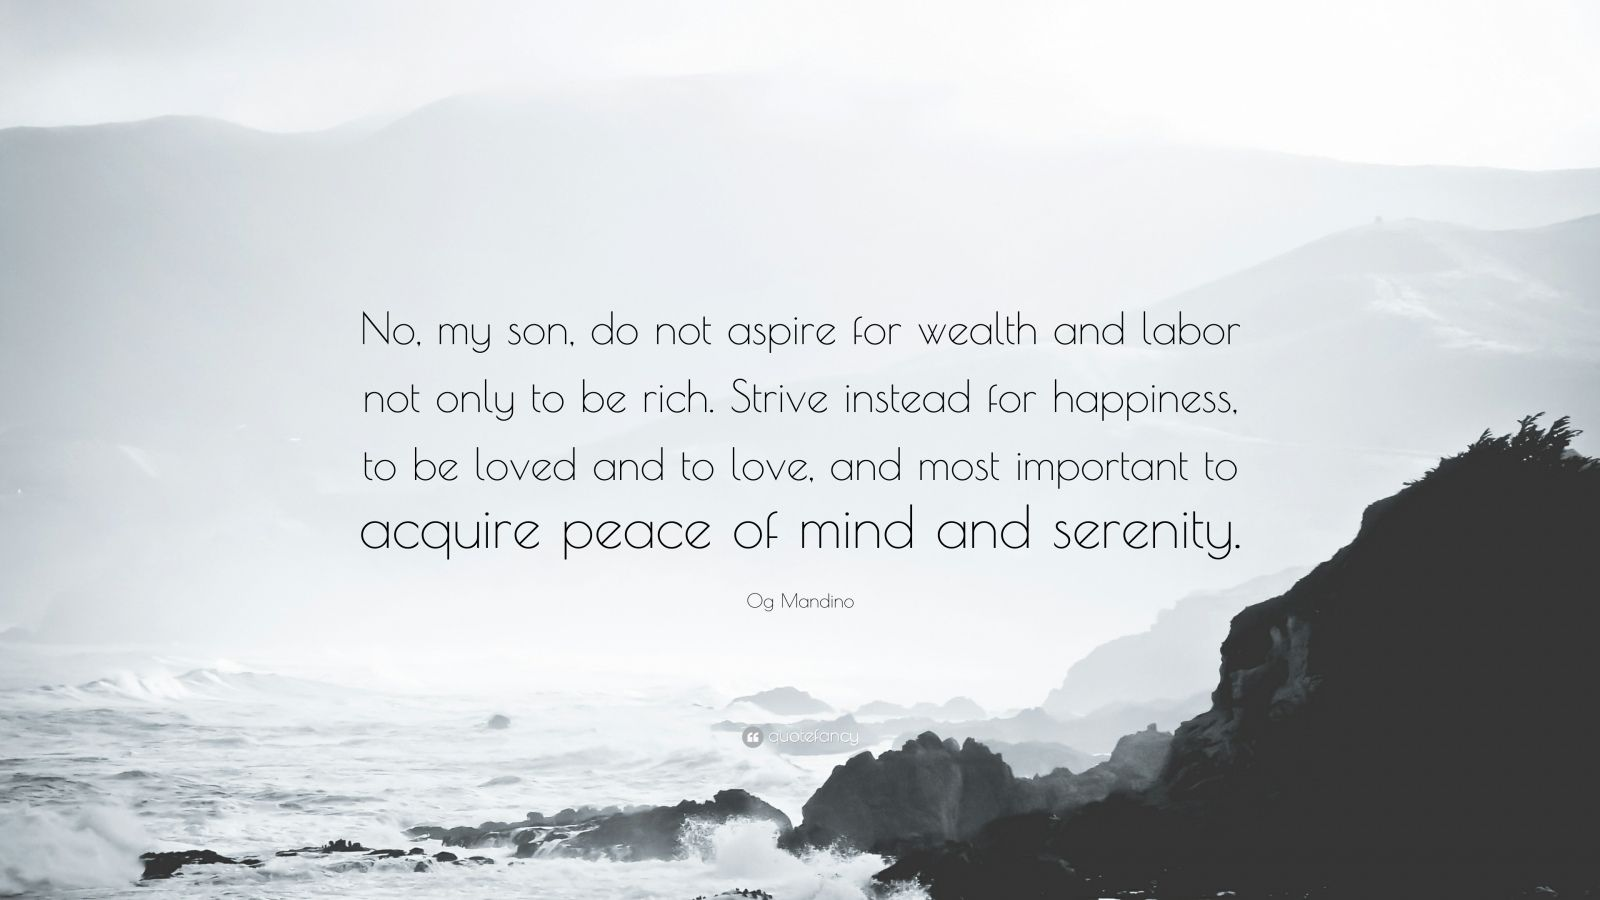 """Og Mandino Quote: """"No, my son, do not aspire for wealth and labor not only to be rich. Strive instead for happiness, to be loved and to love, and most important to acquire peace of mind and serenity."""""""